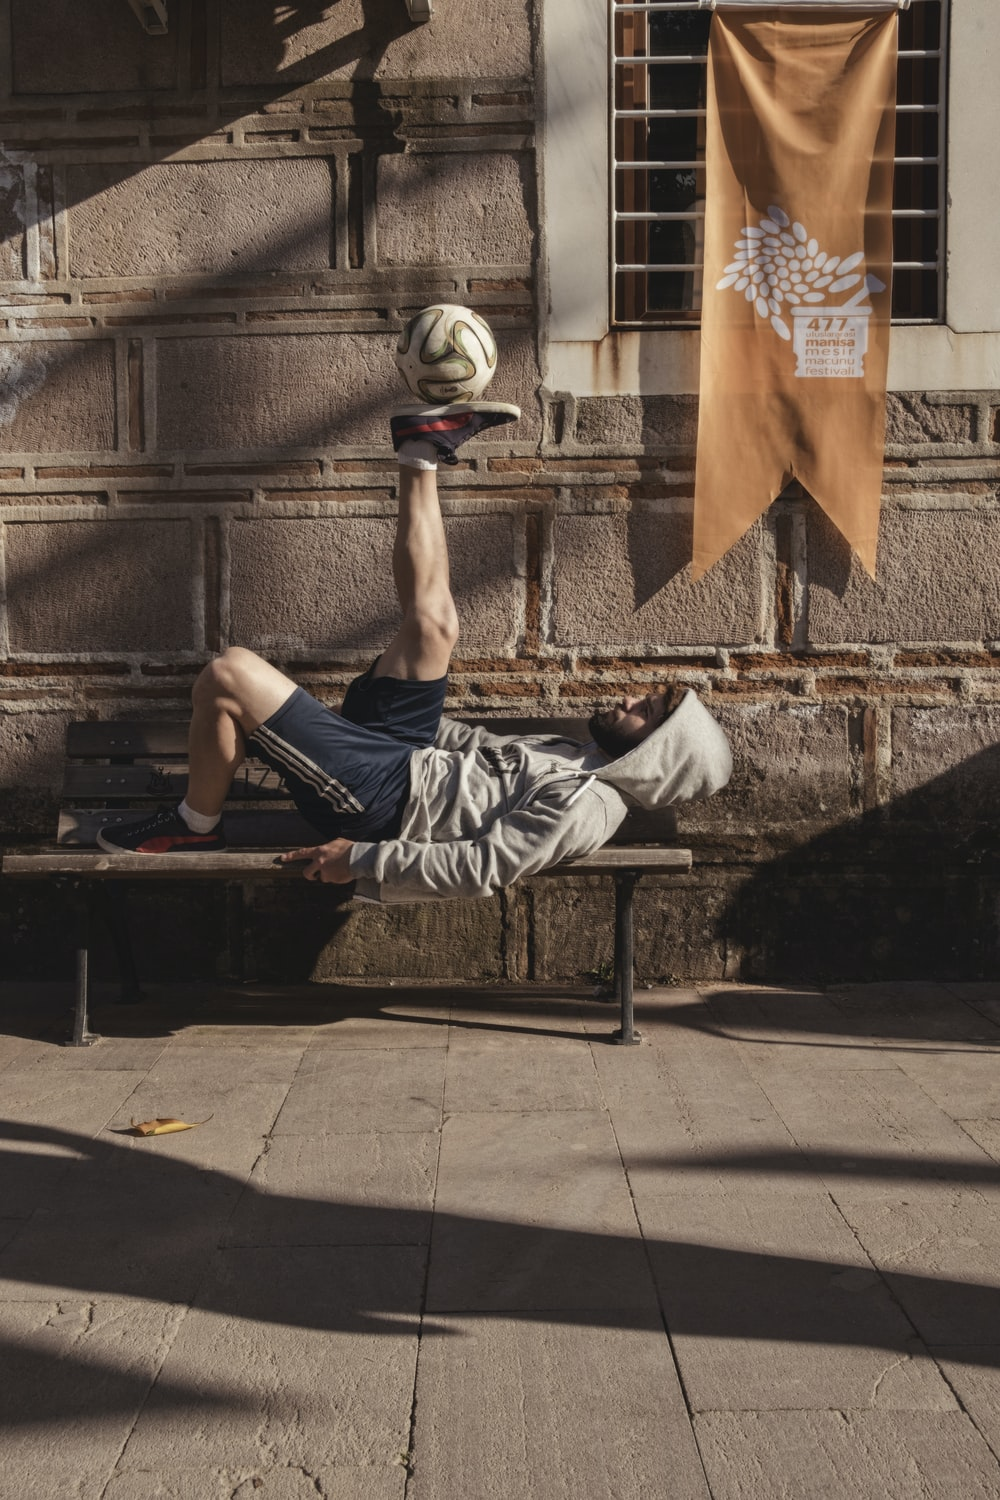 man in gray hooded jacket and black shorts playing ball while lying on bench